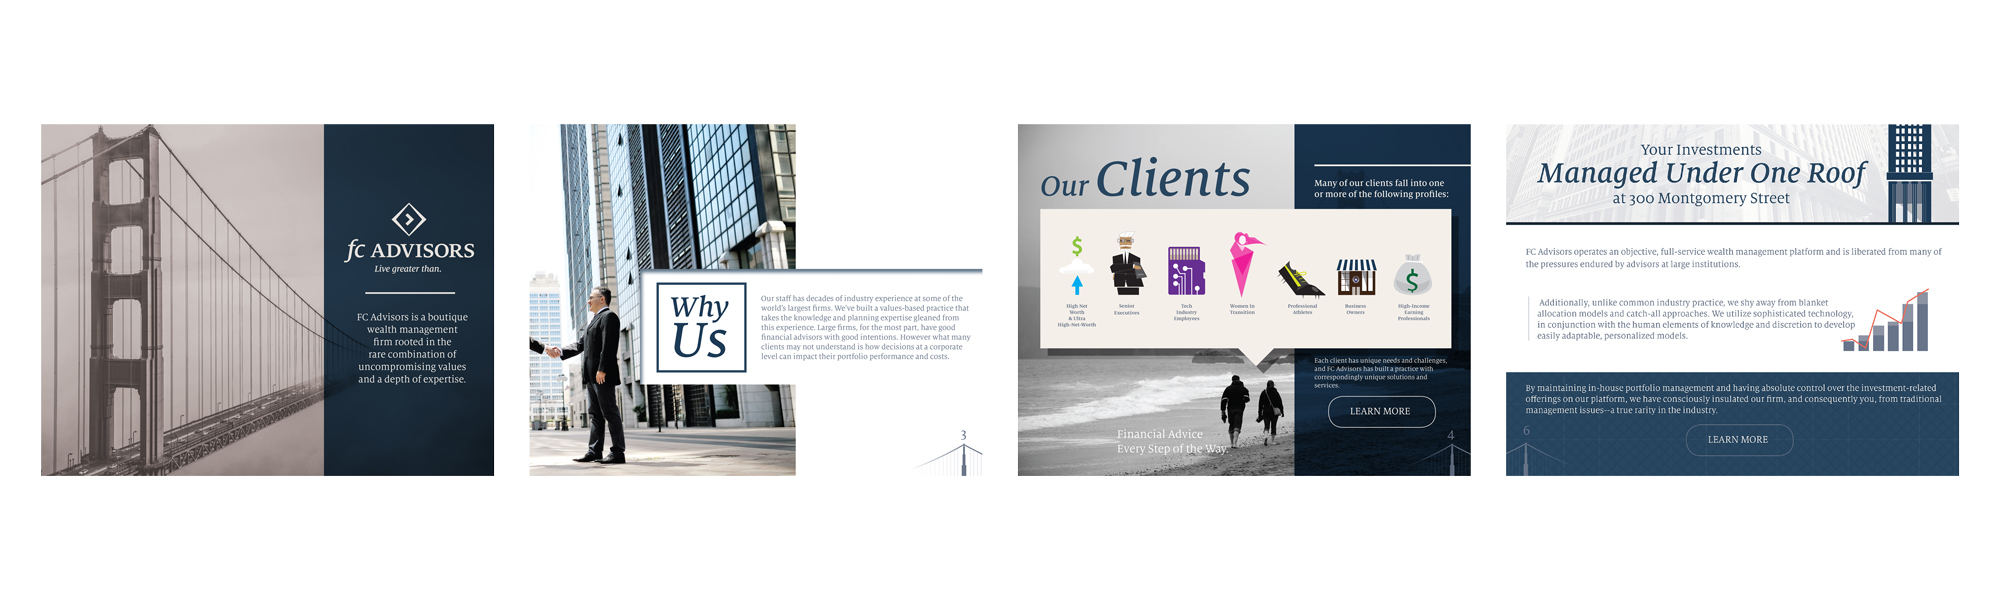 FC Advisors, San Francisco  Selected pages from a 10-page e-book